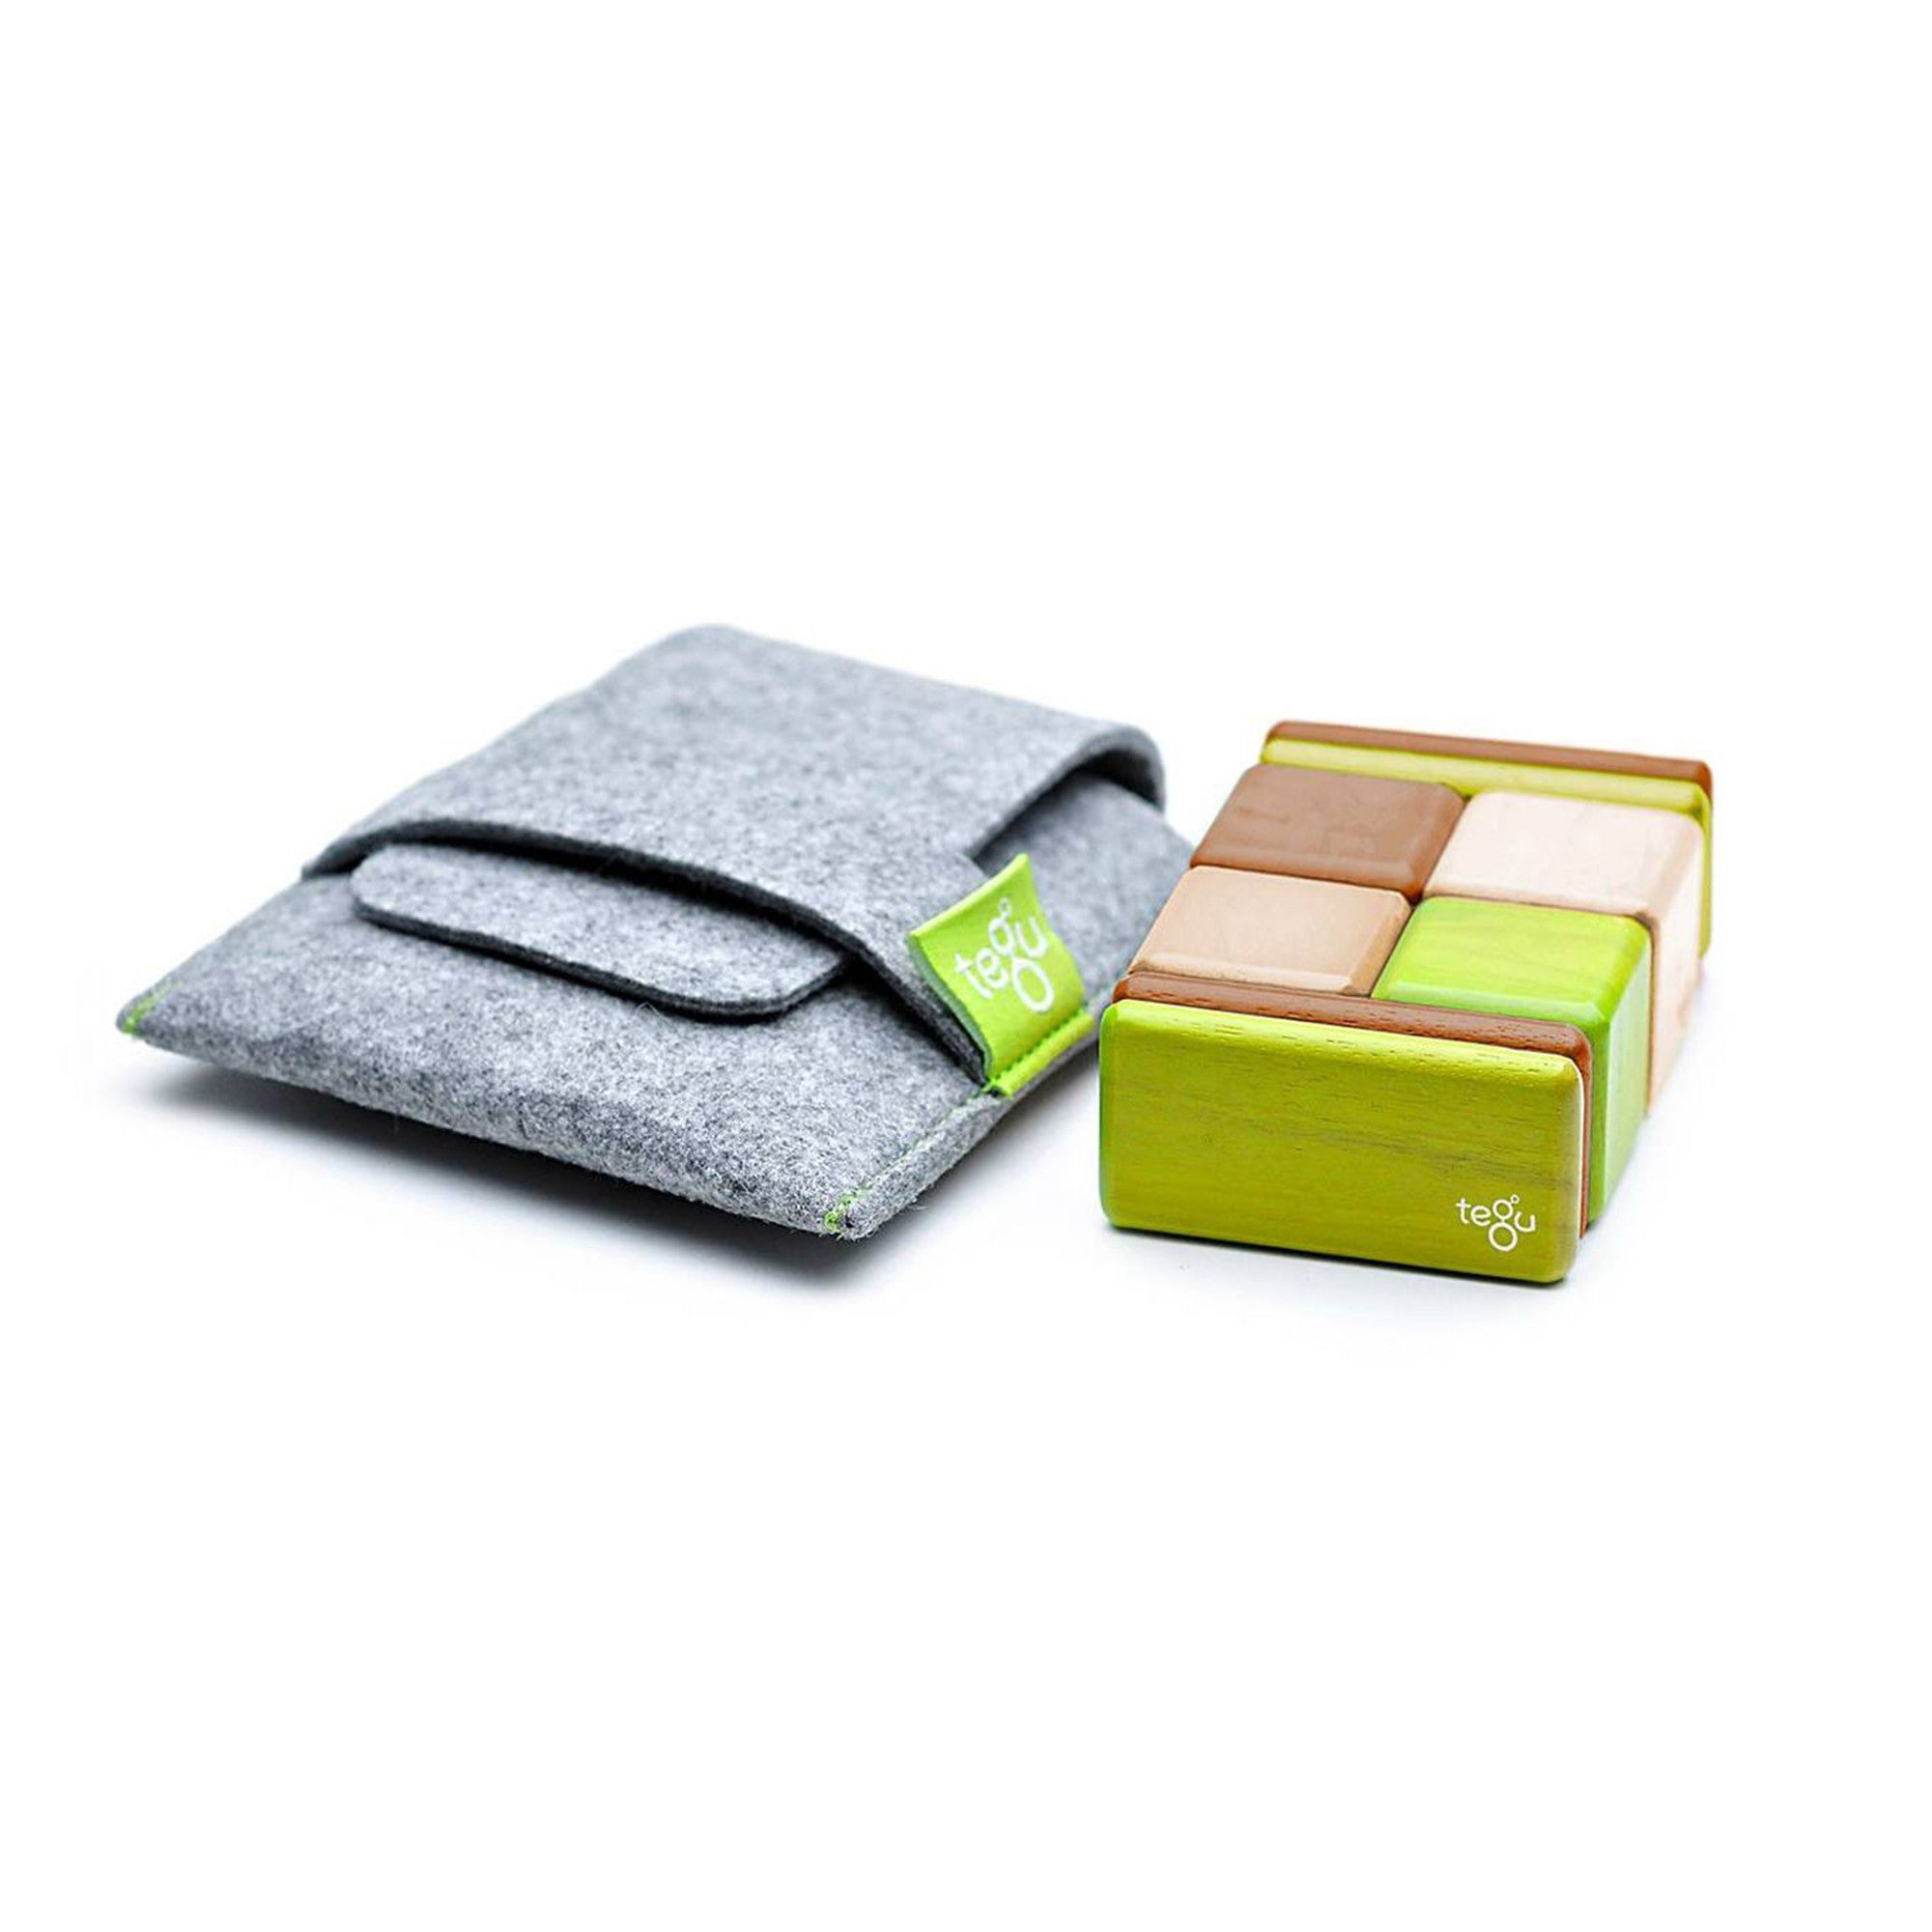 Tegu Pocket Pouch 8 Piece Magnetic Block Set Tegu Magnet Toys at Little Earth Nest Eco Shop